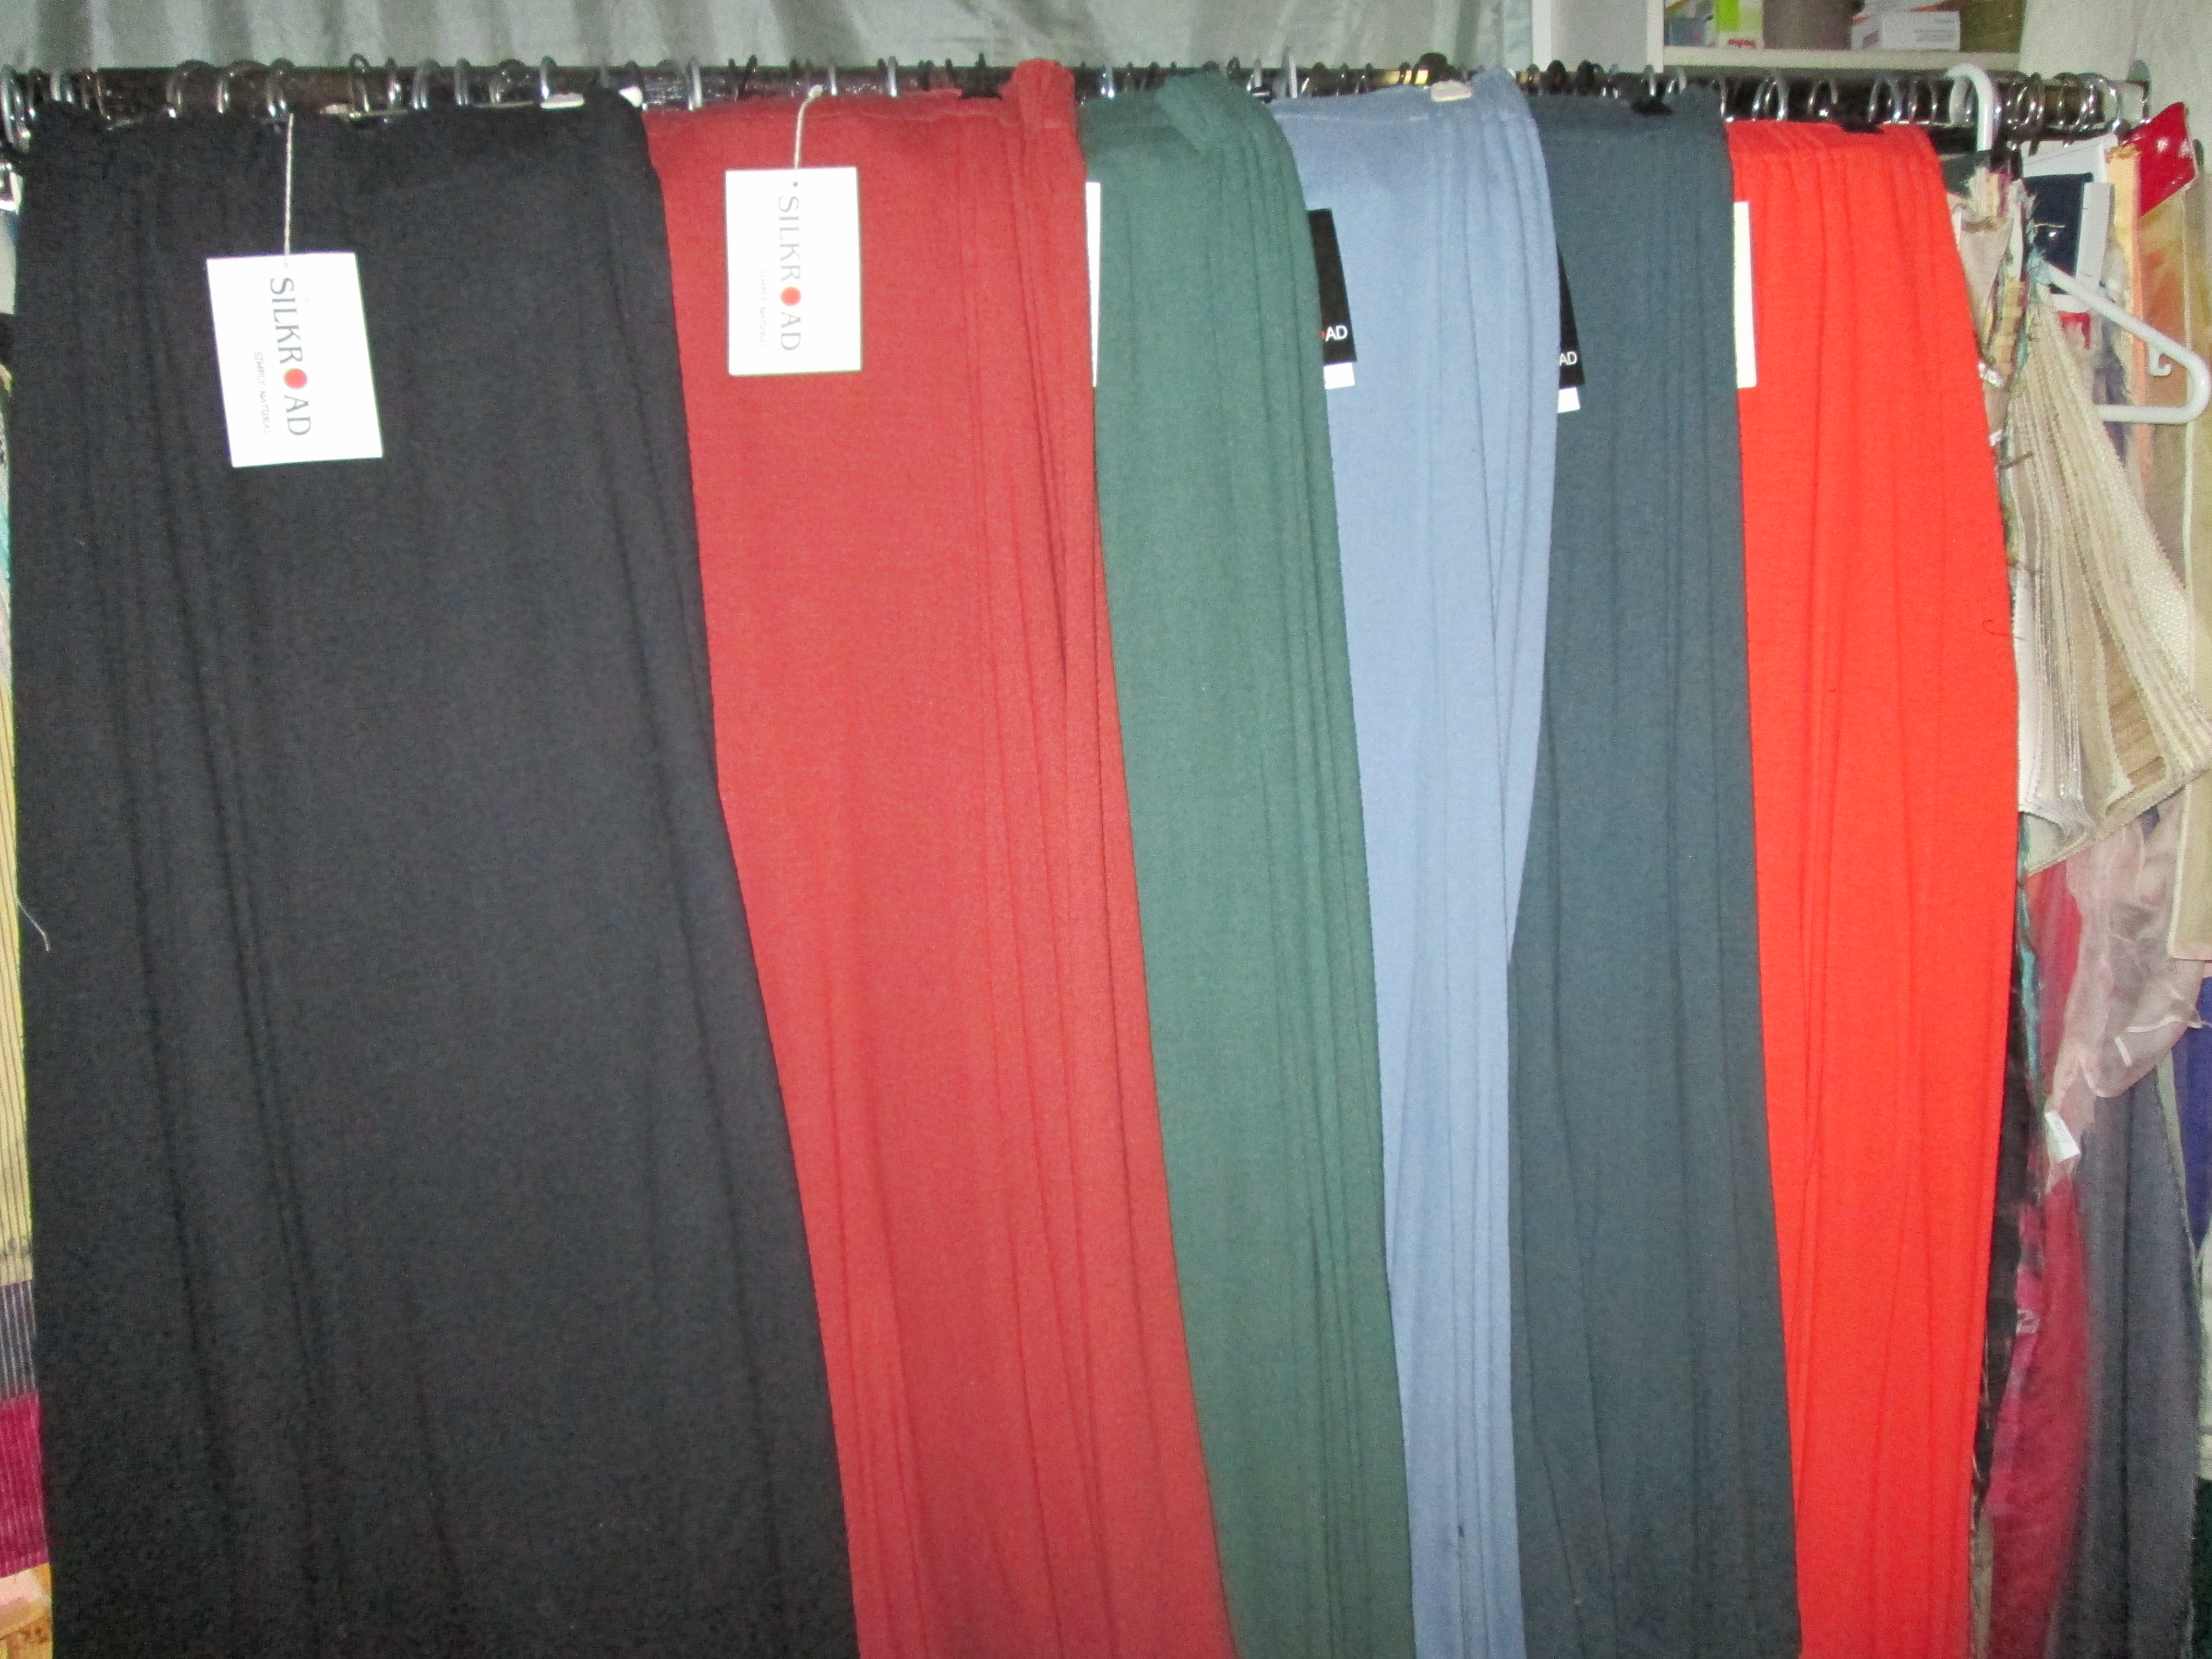 5998    S  in  rot,.orange,orangdklgrau, schwarz,